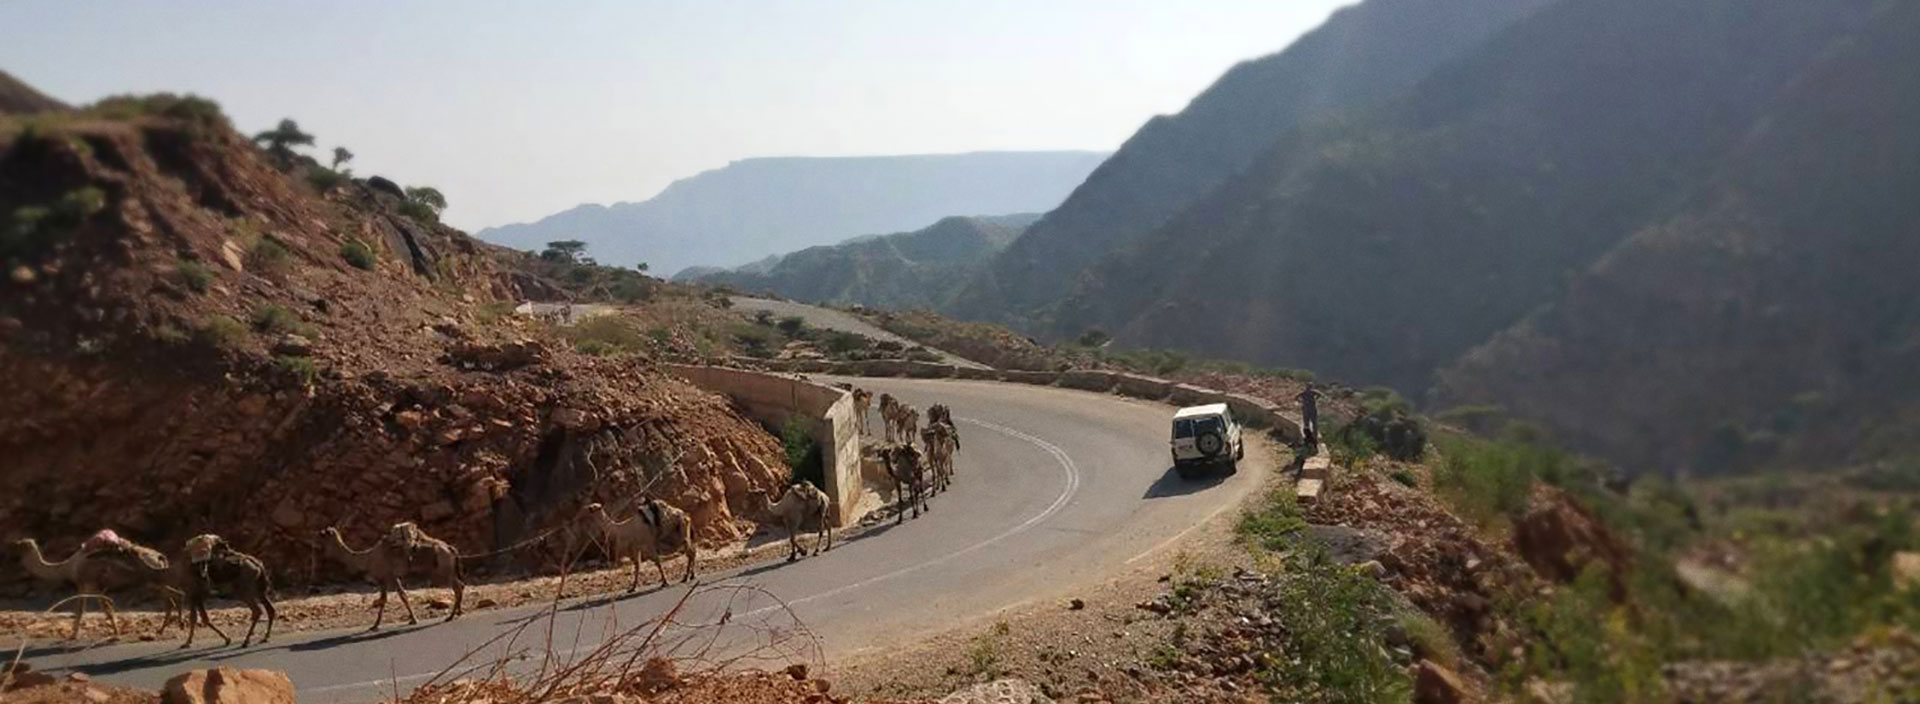 Winding road with camels